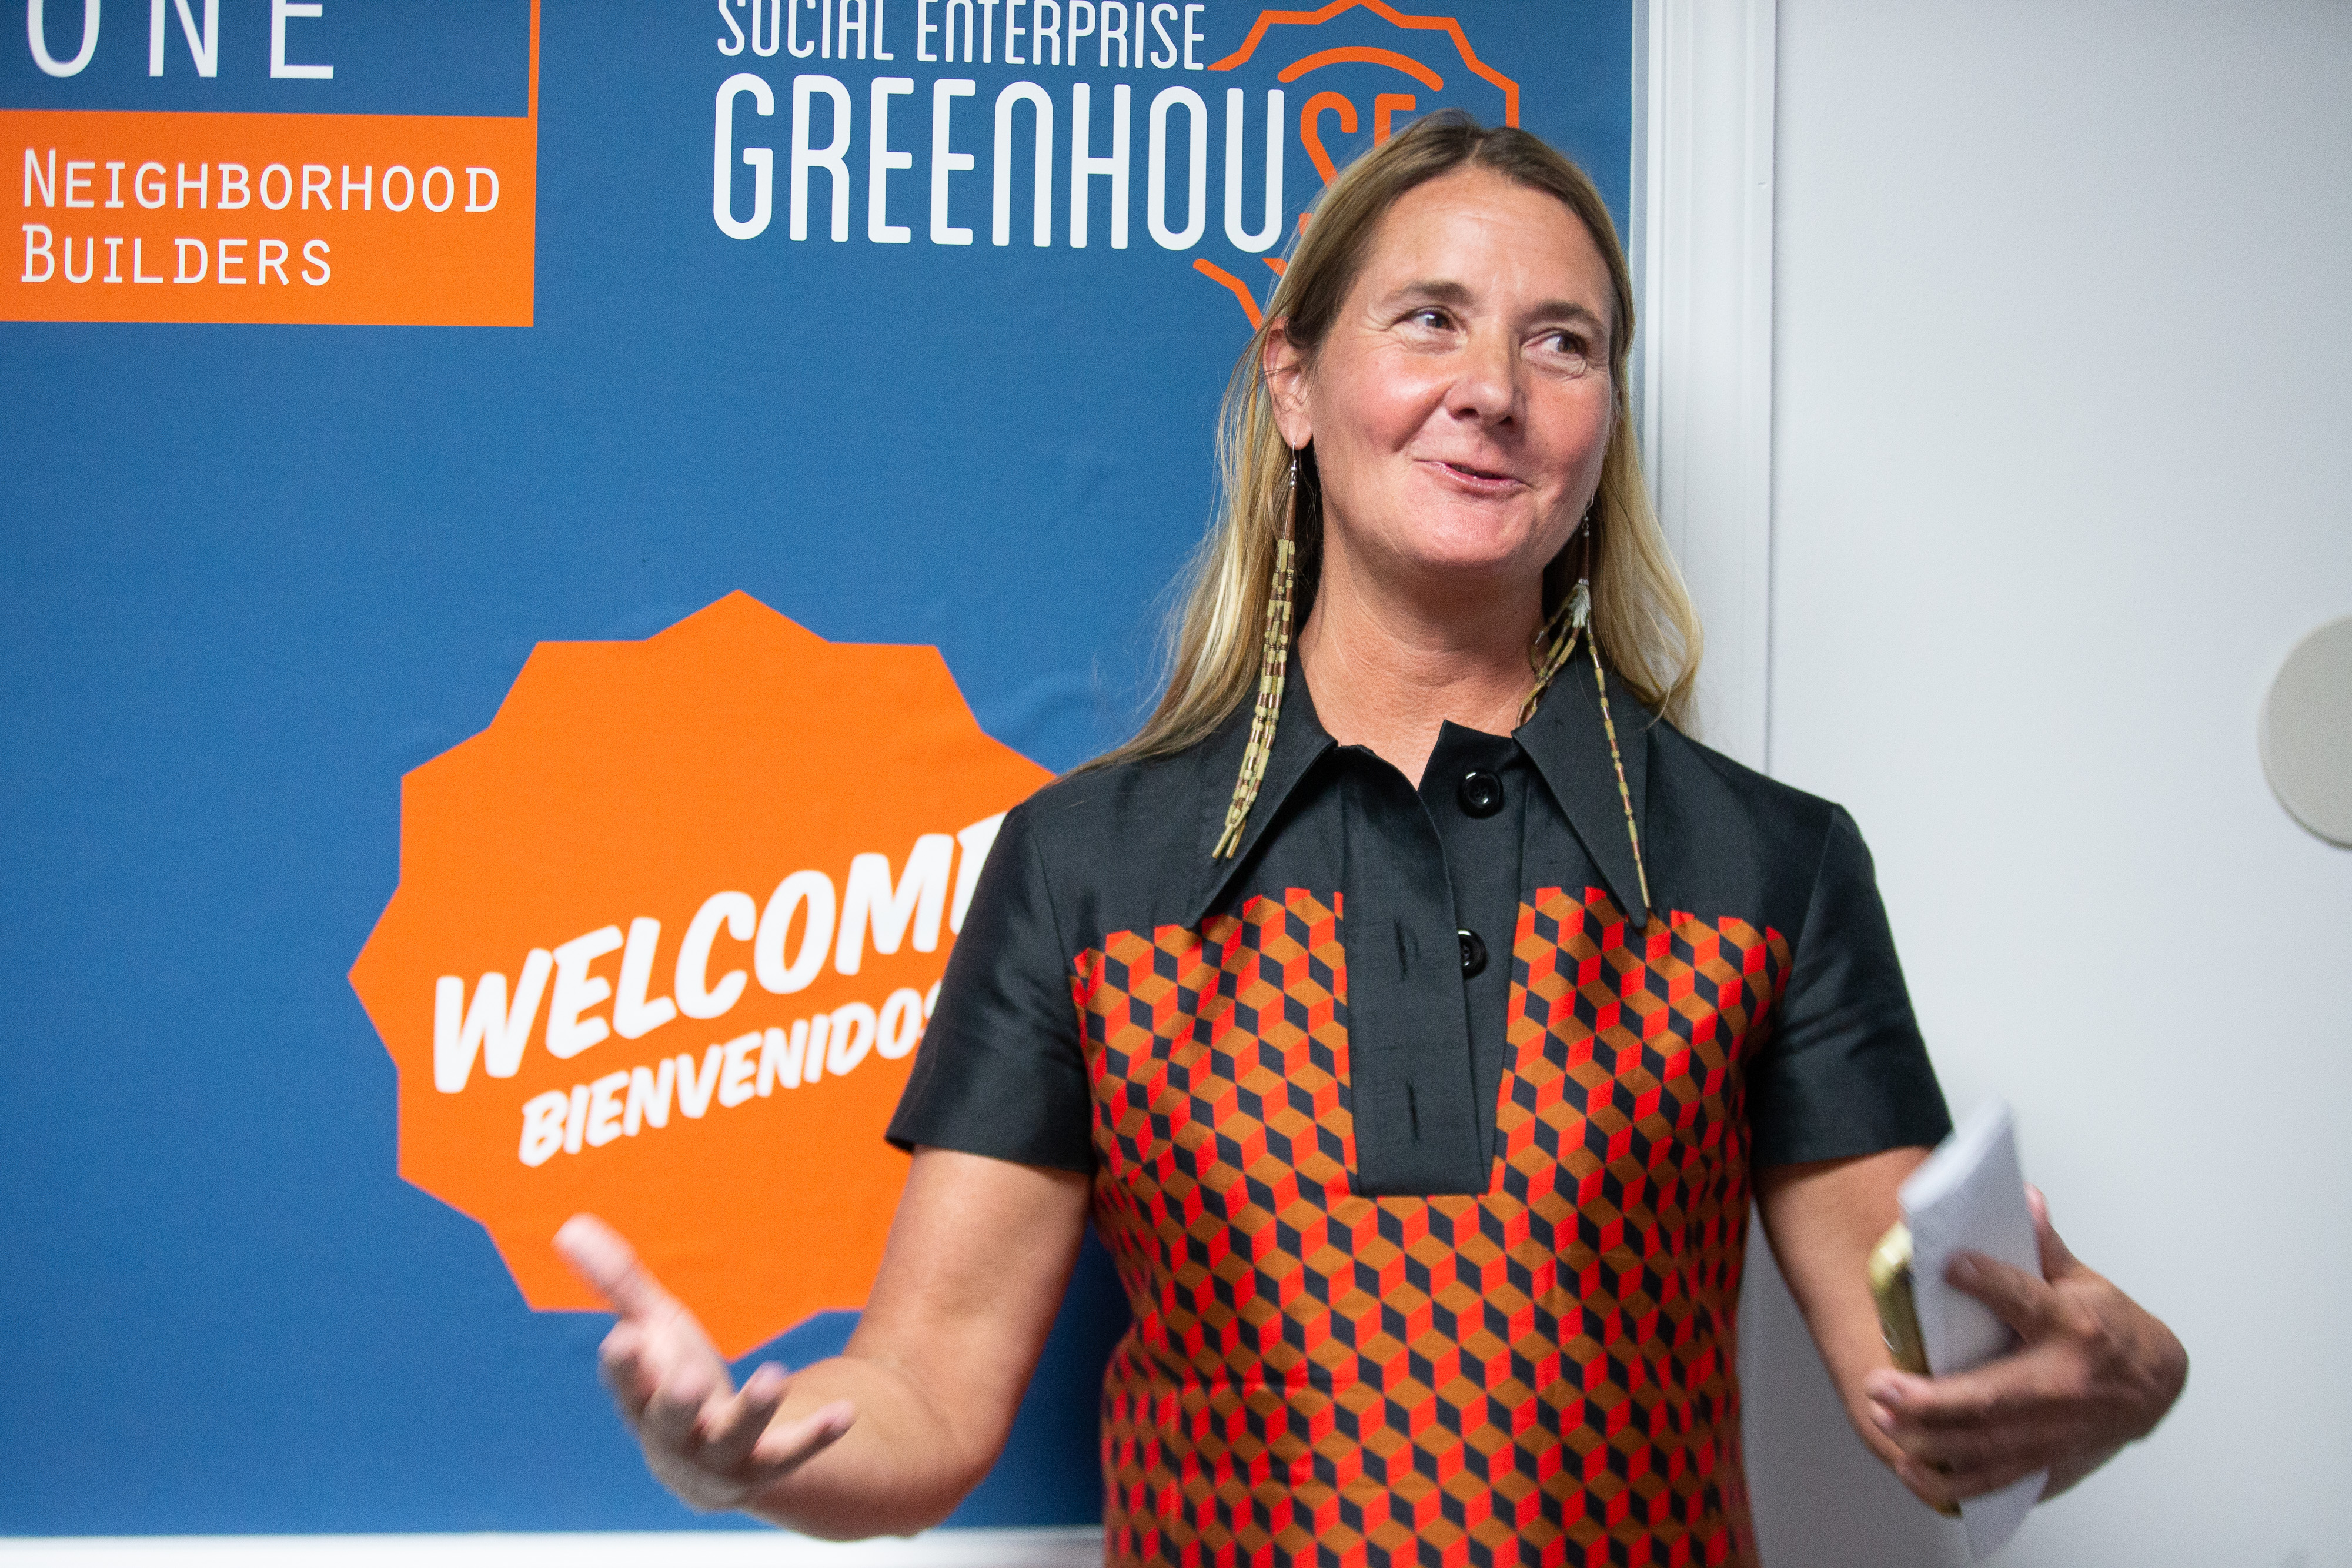 Kelly Ramirez, co-founder and CEO of Social Enterprise Greenhouse, welcomes guests to the new business support center developed by Social Enterprise Greenhouse and ONE Neighborhood Builders in Providence, Rhode Island.